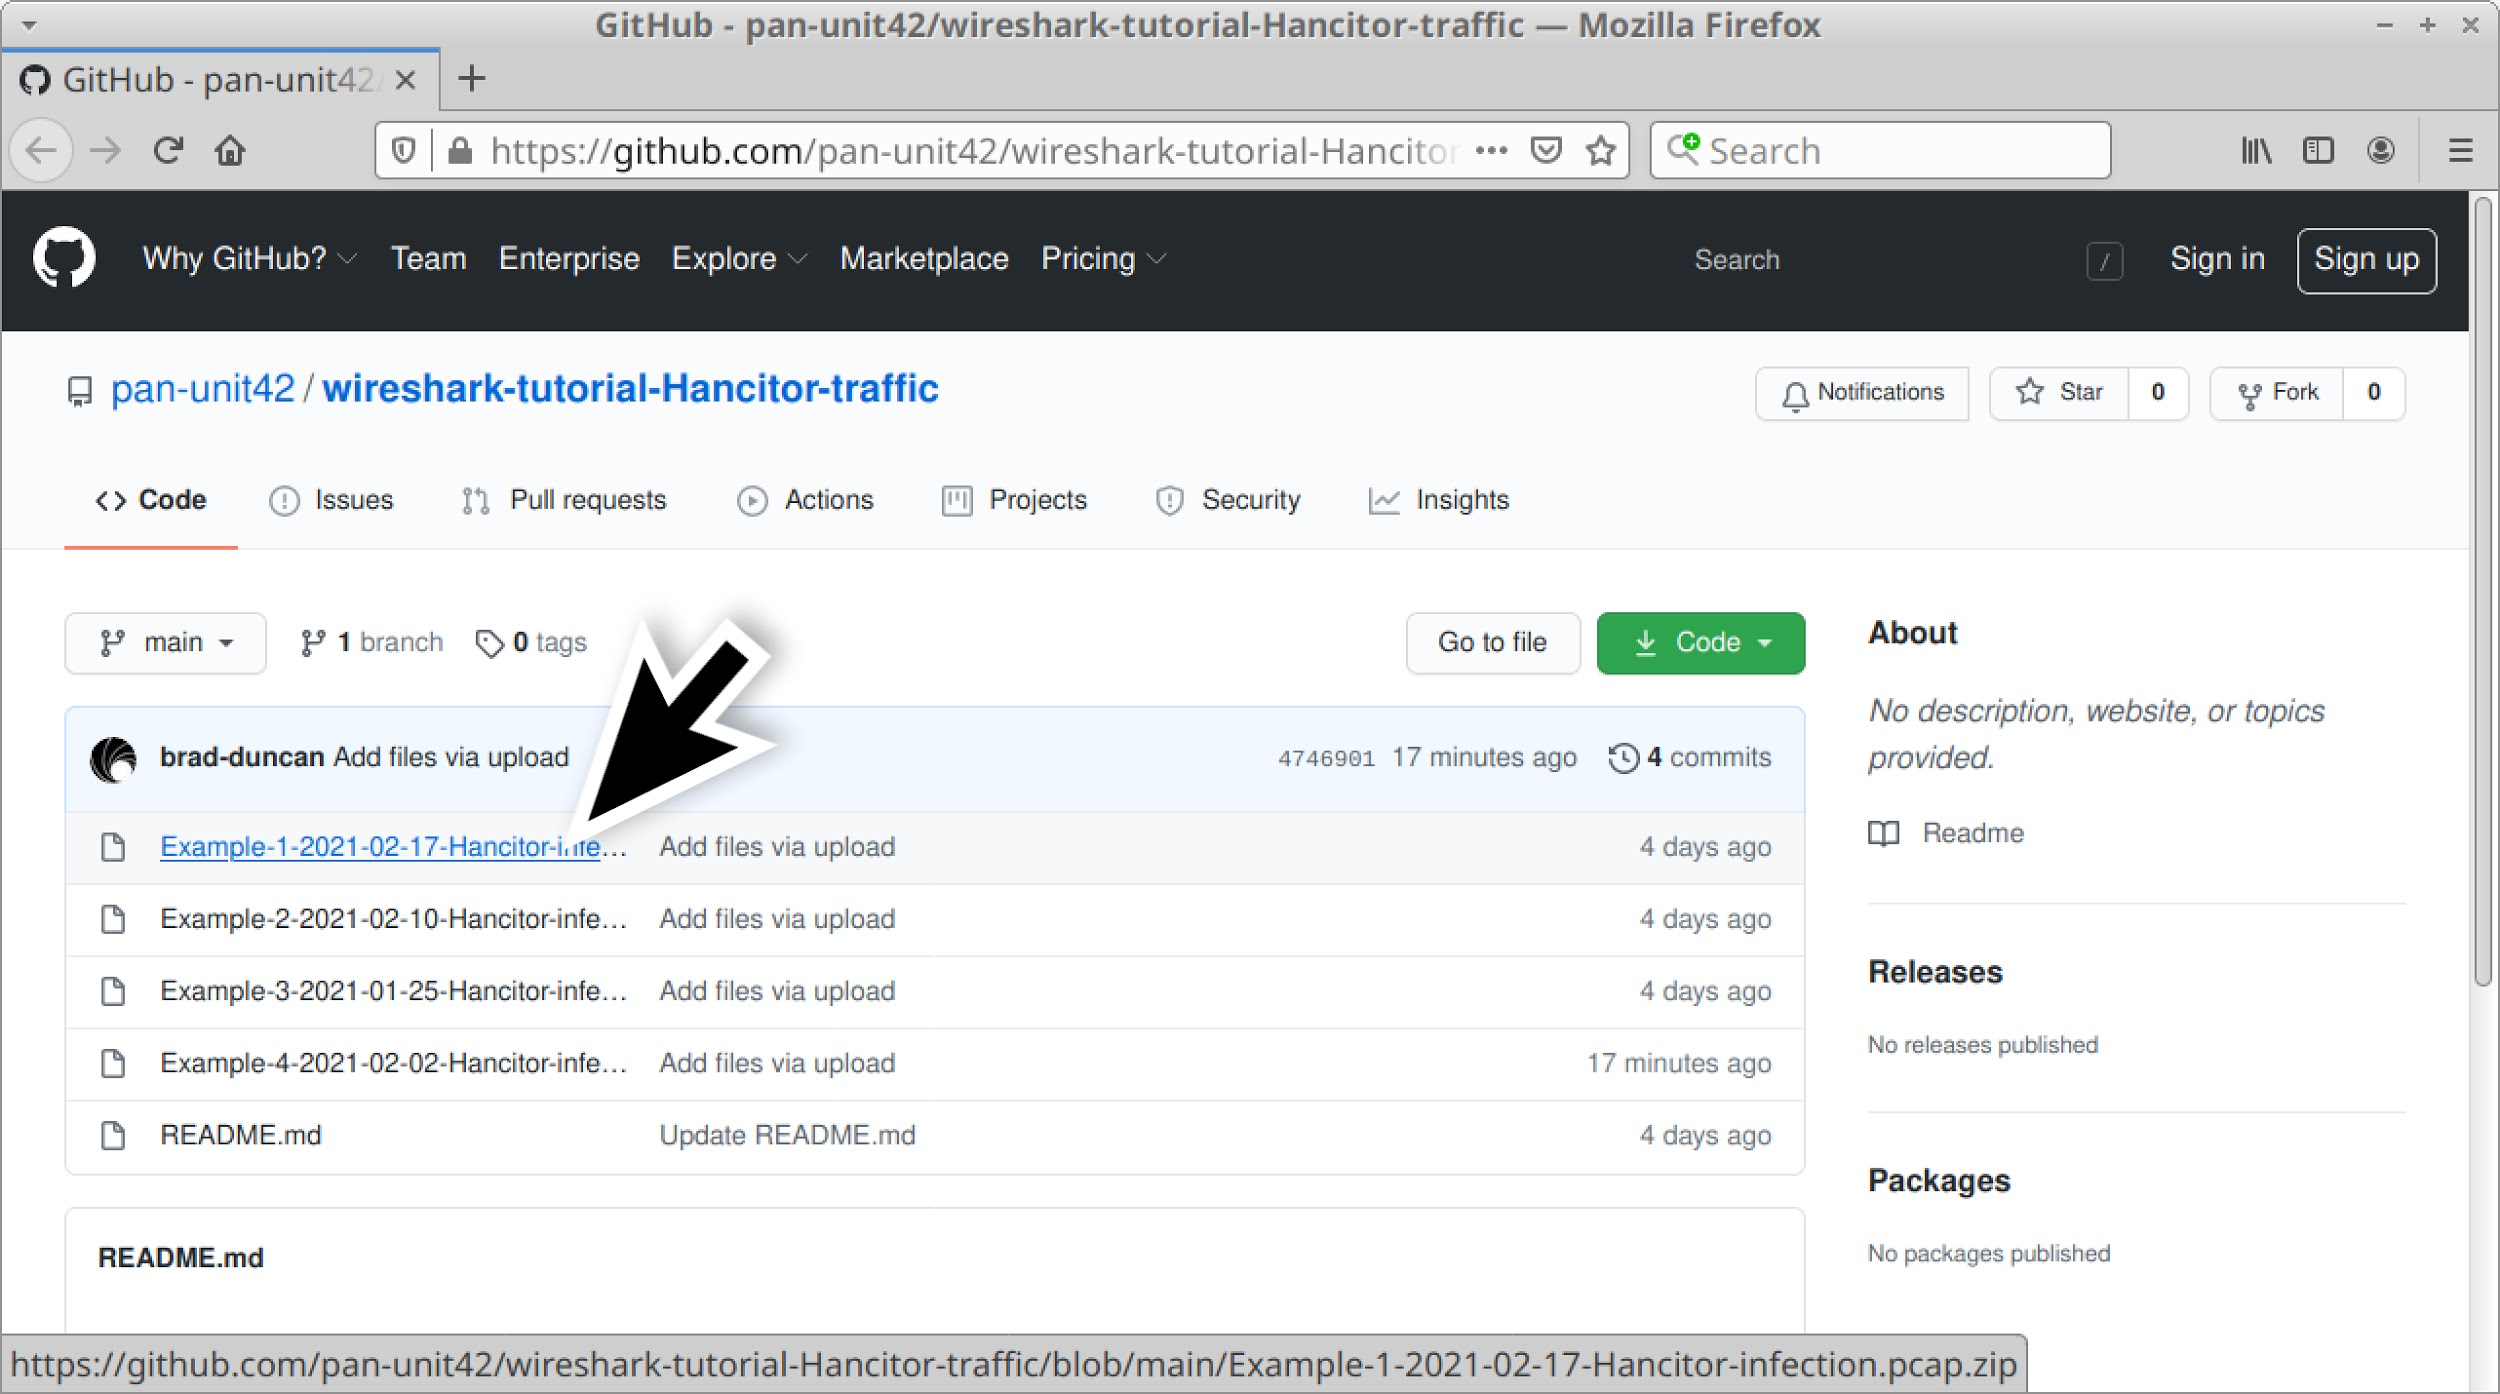 The large black arrow indicates where to click to download one of the four ZIP archives used with this Wireshark tutorial on Hancitor infections.